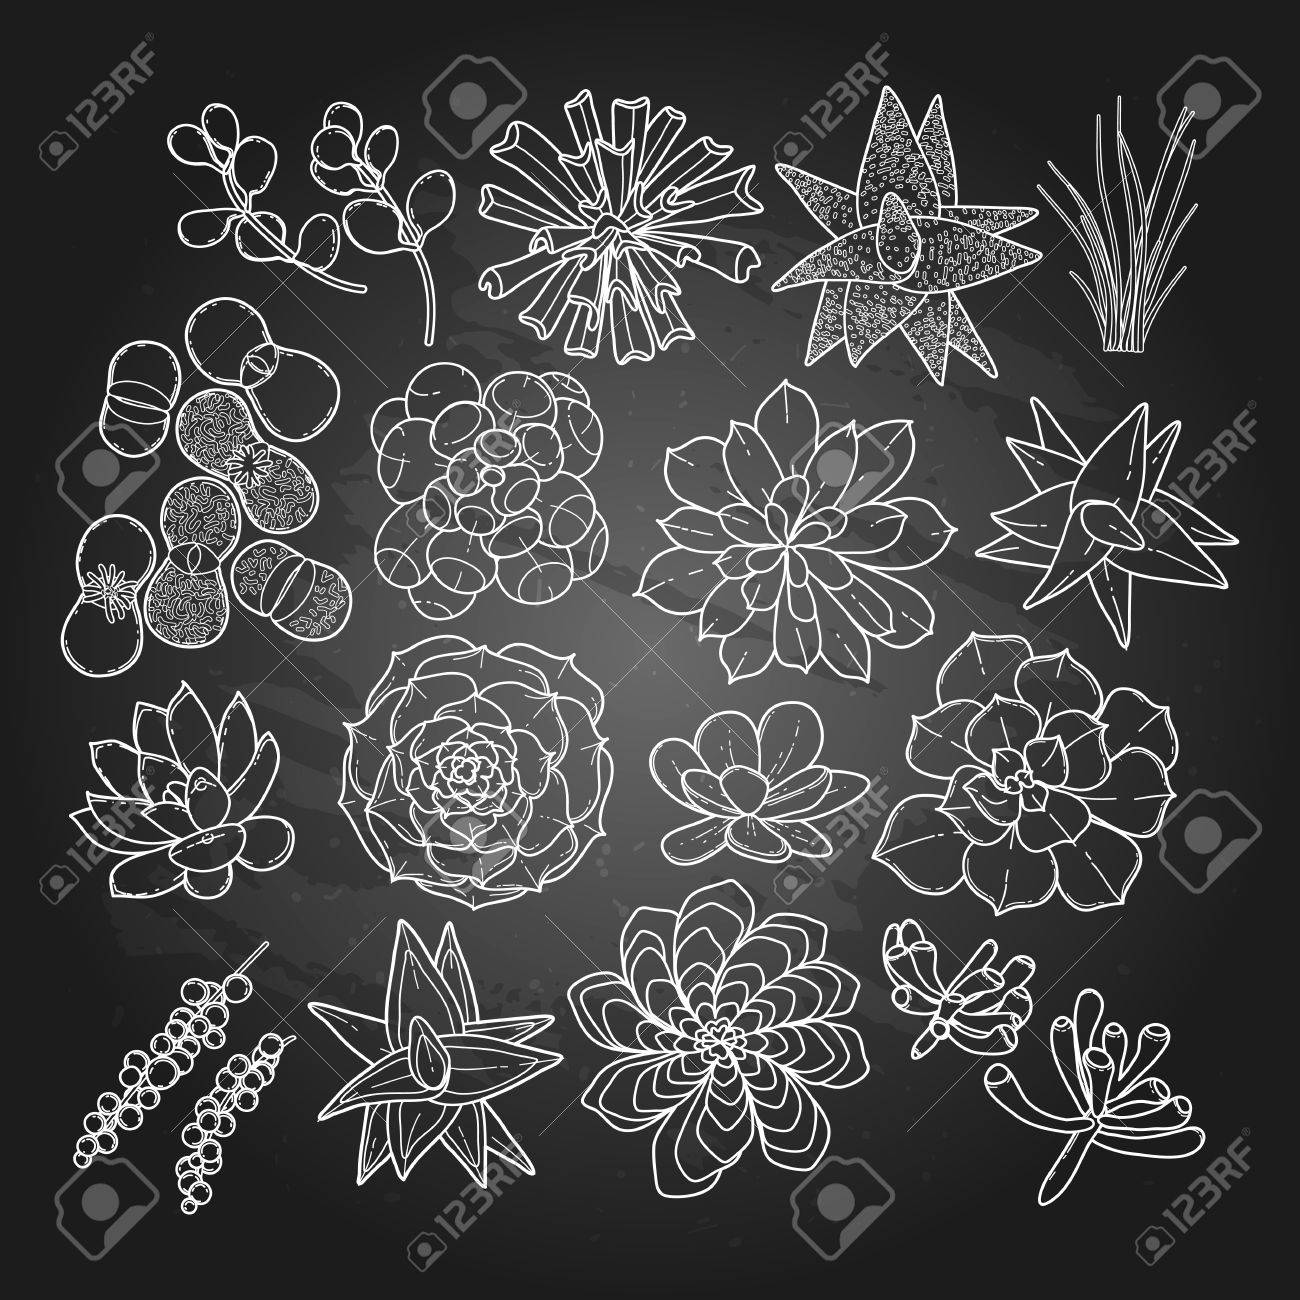 Graphic Succulent Collection Isolated On Chalkboard Vector Floral Royalty Free Cliparts Vectors And Stock Illustration Image 58970076